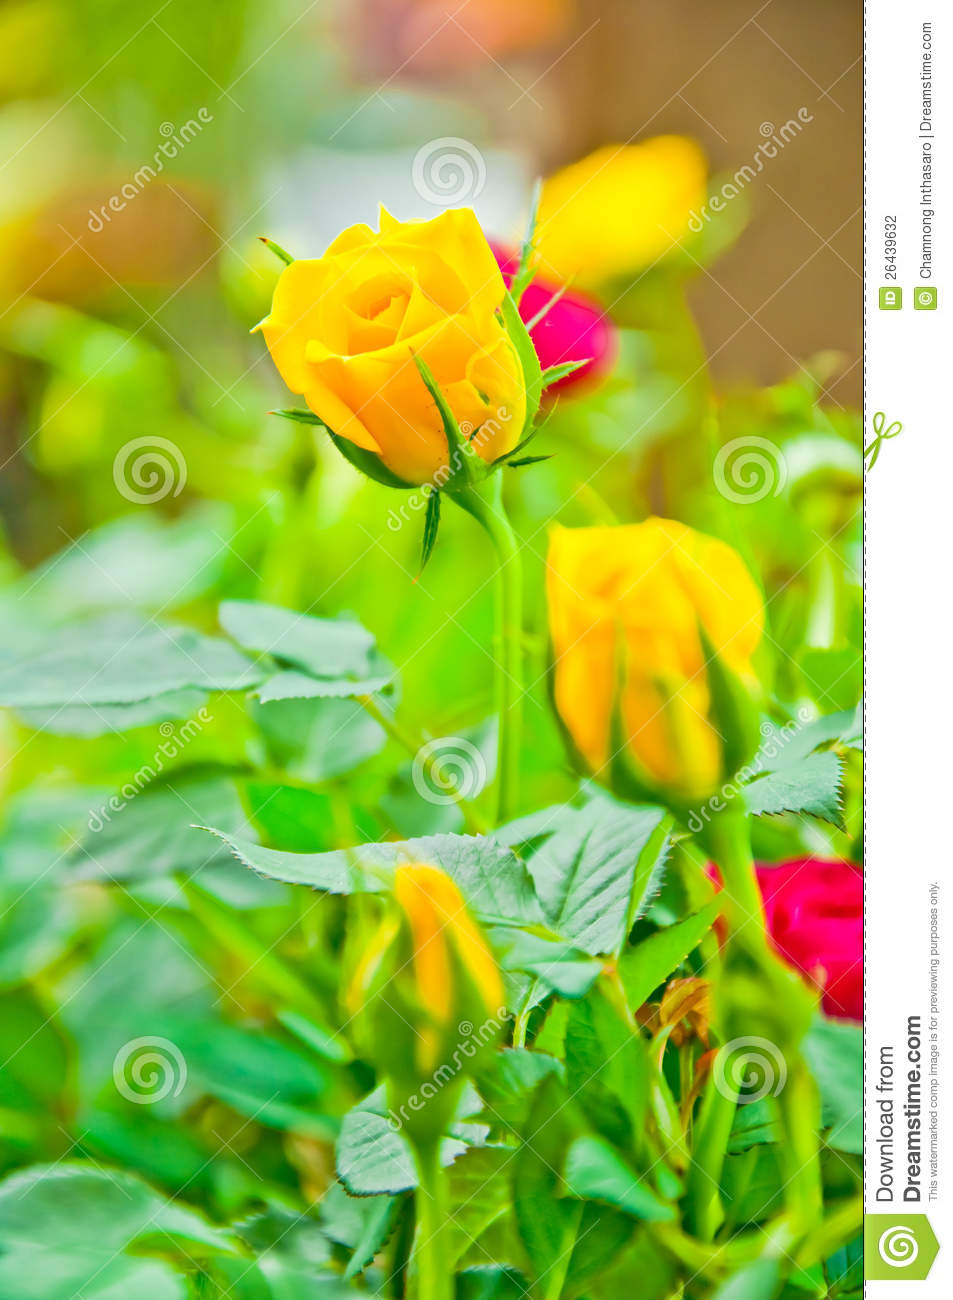 beauty yellow rose flower early morning stock photo image of cream